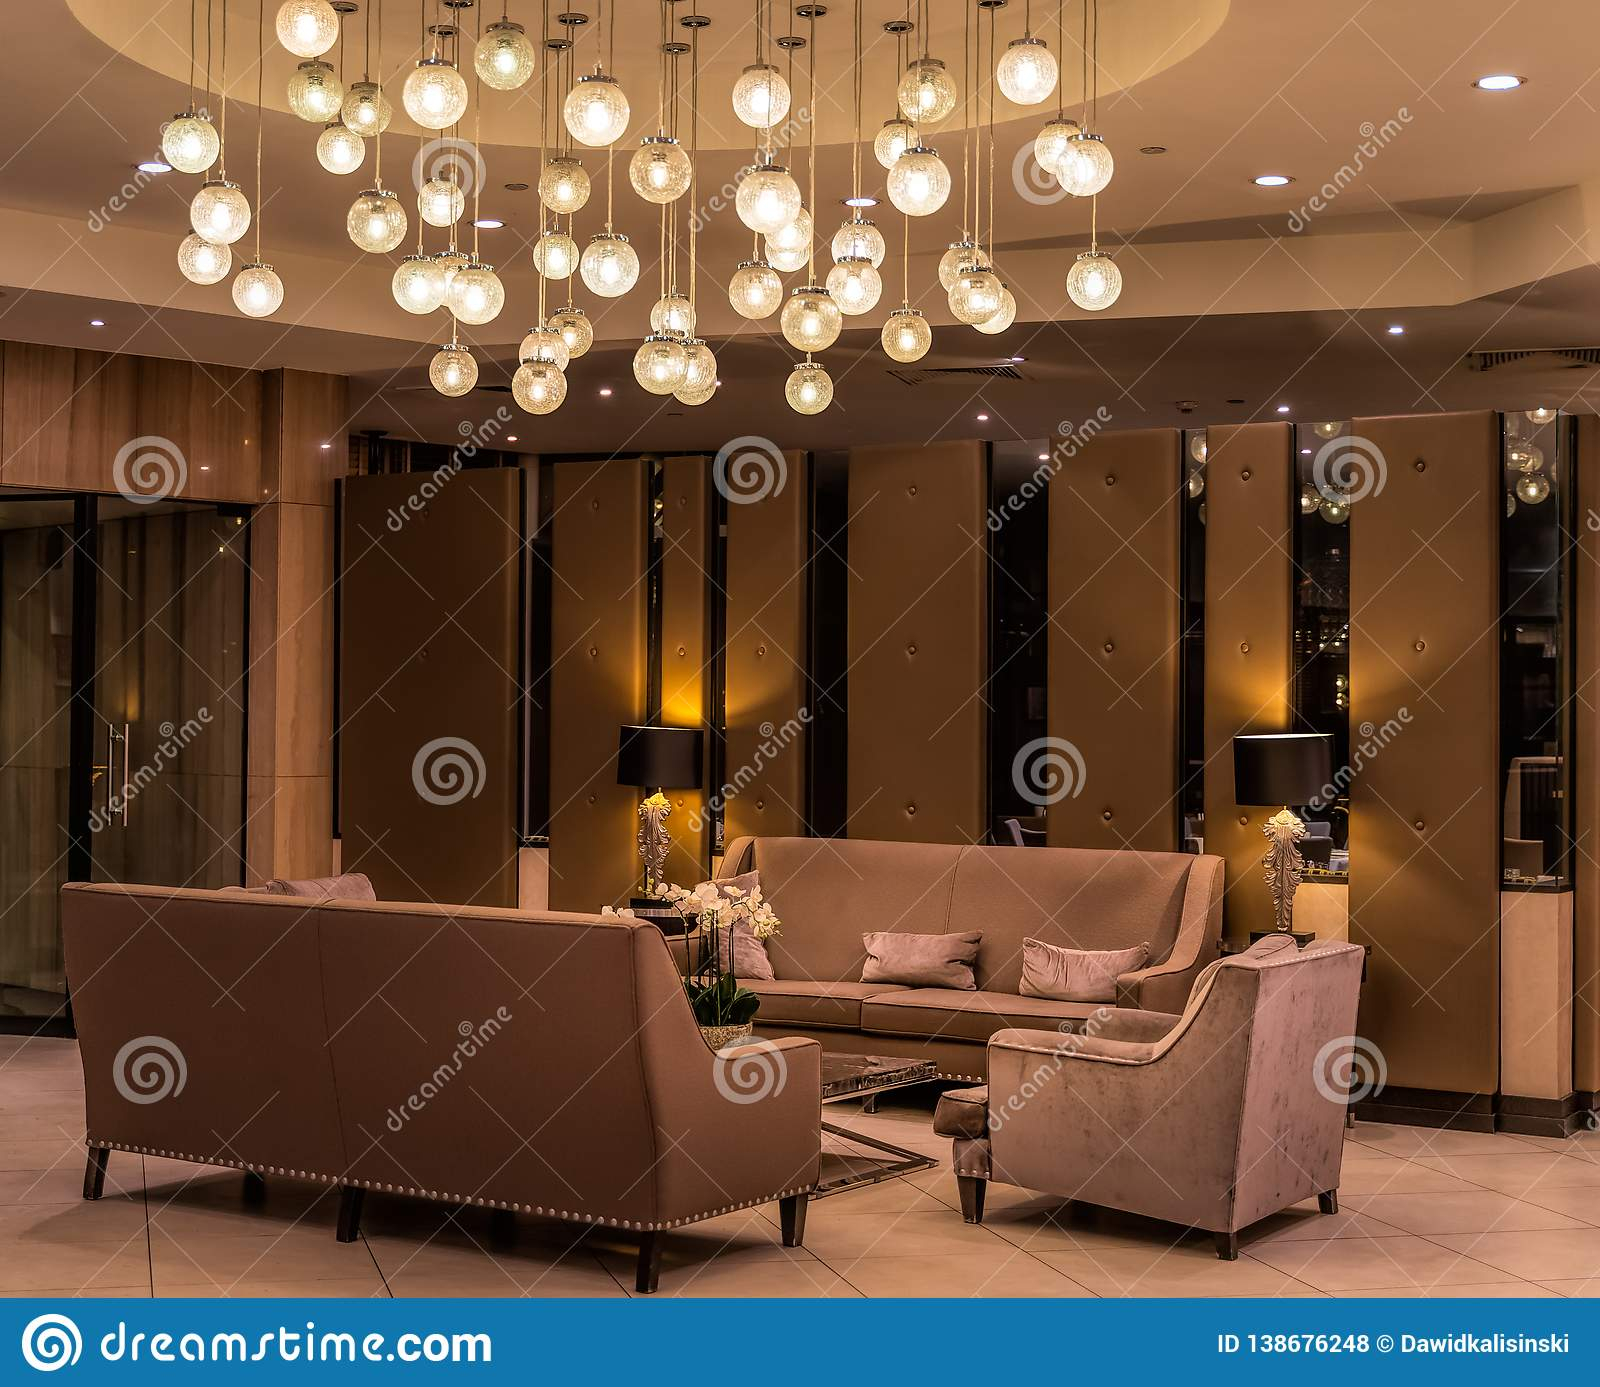 Modern luxurious lobby for hotel with comfortable sofas, arm chairs and moody lighting